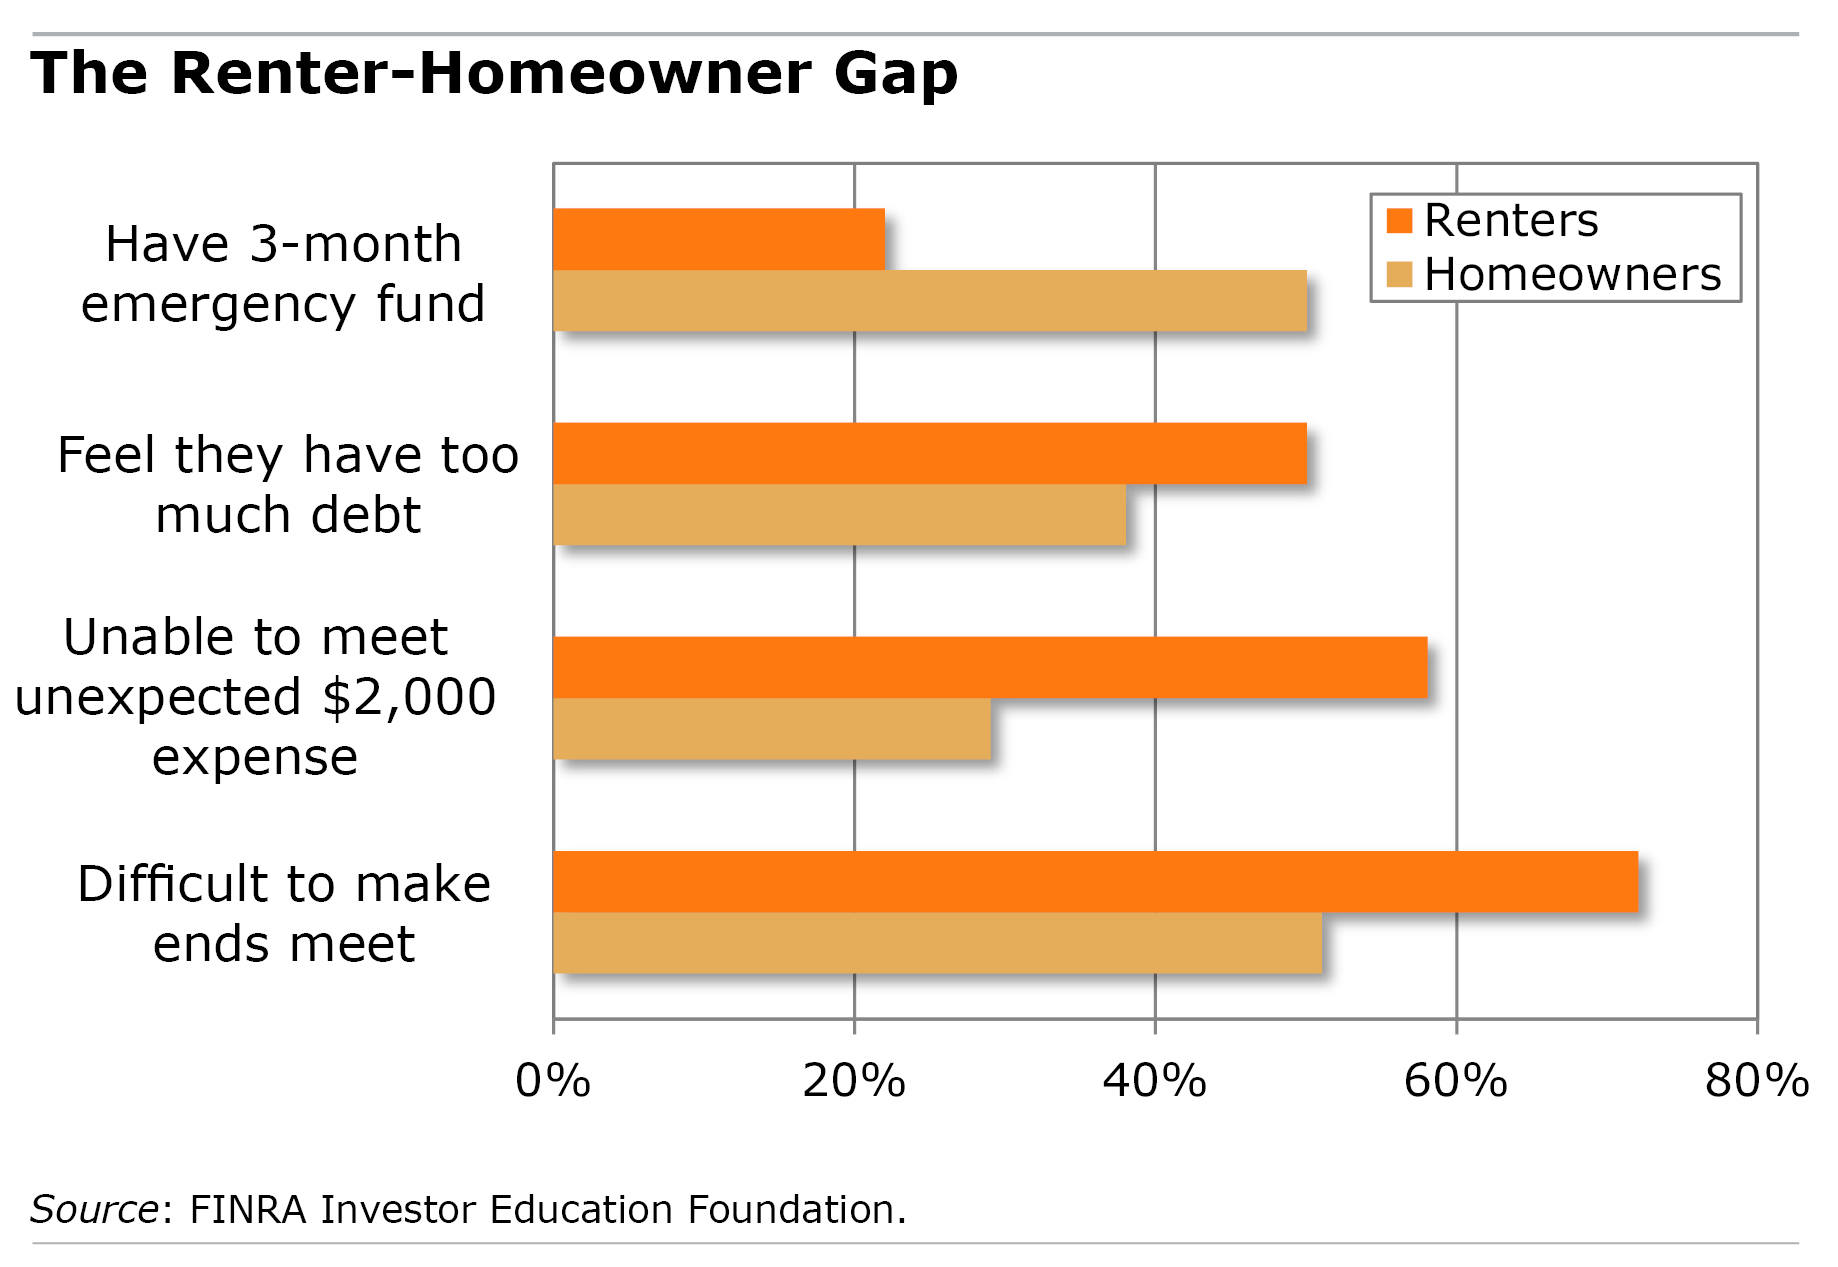 Chart: The renter-homeowner gap